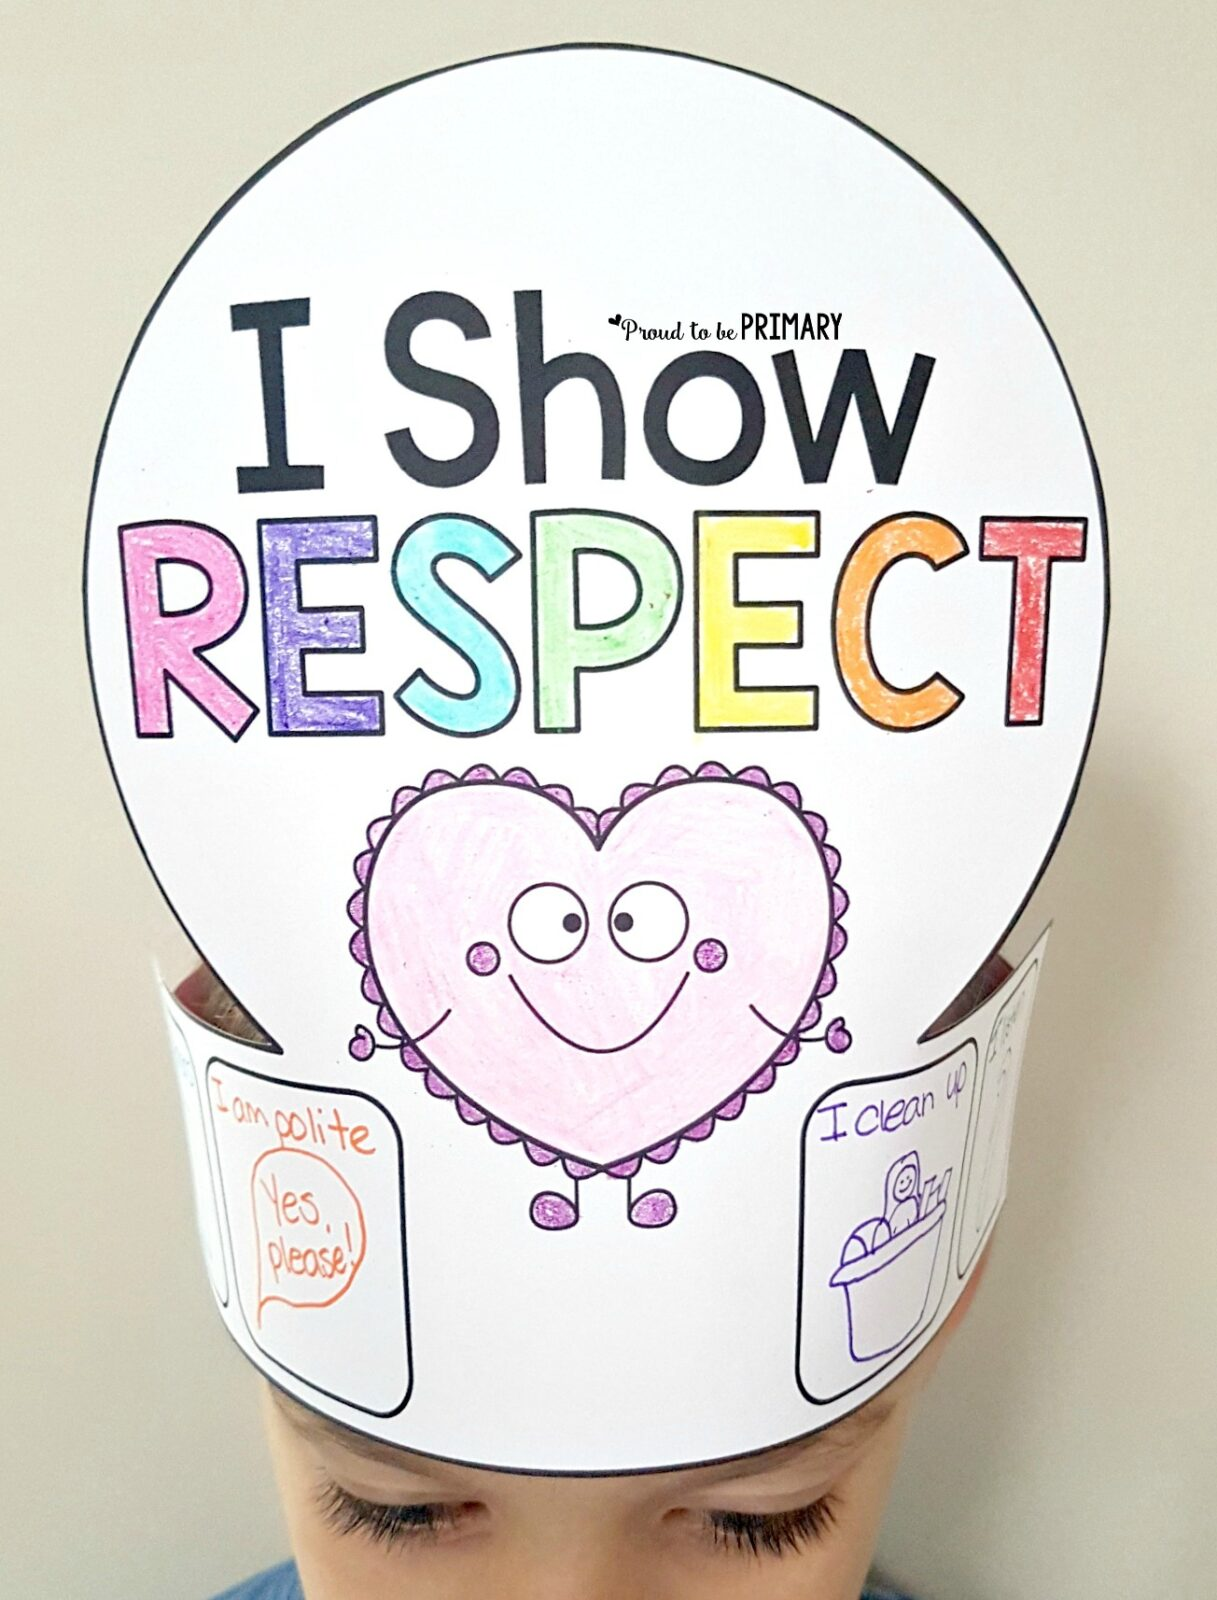 Respect Activities- I Show Respect hat craft for kids to make